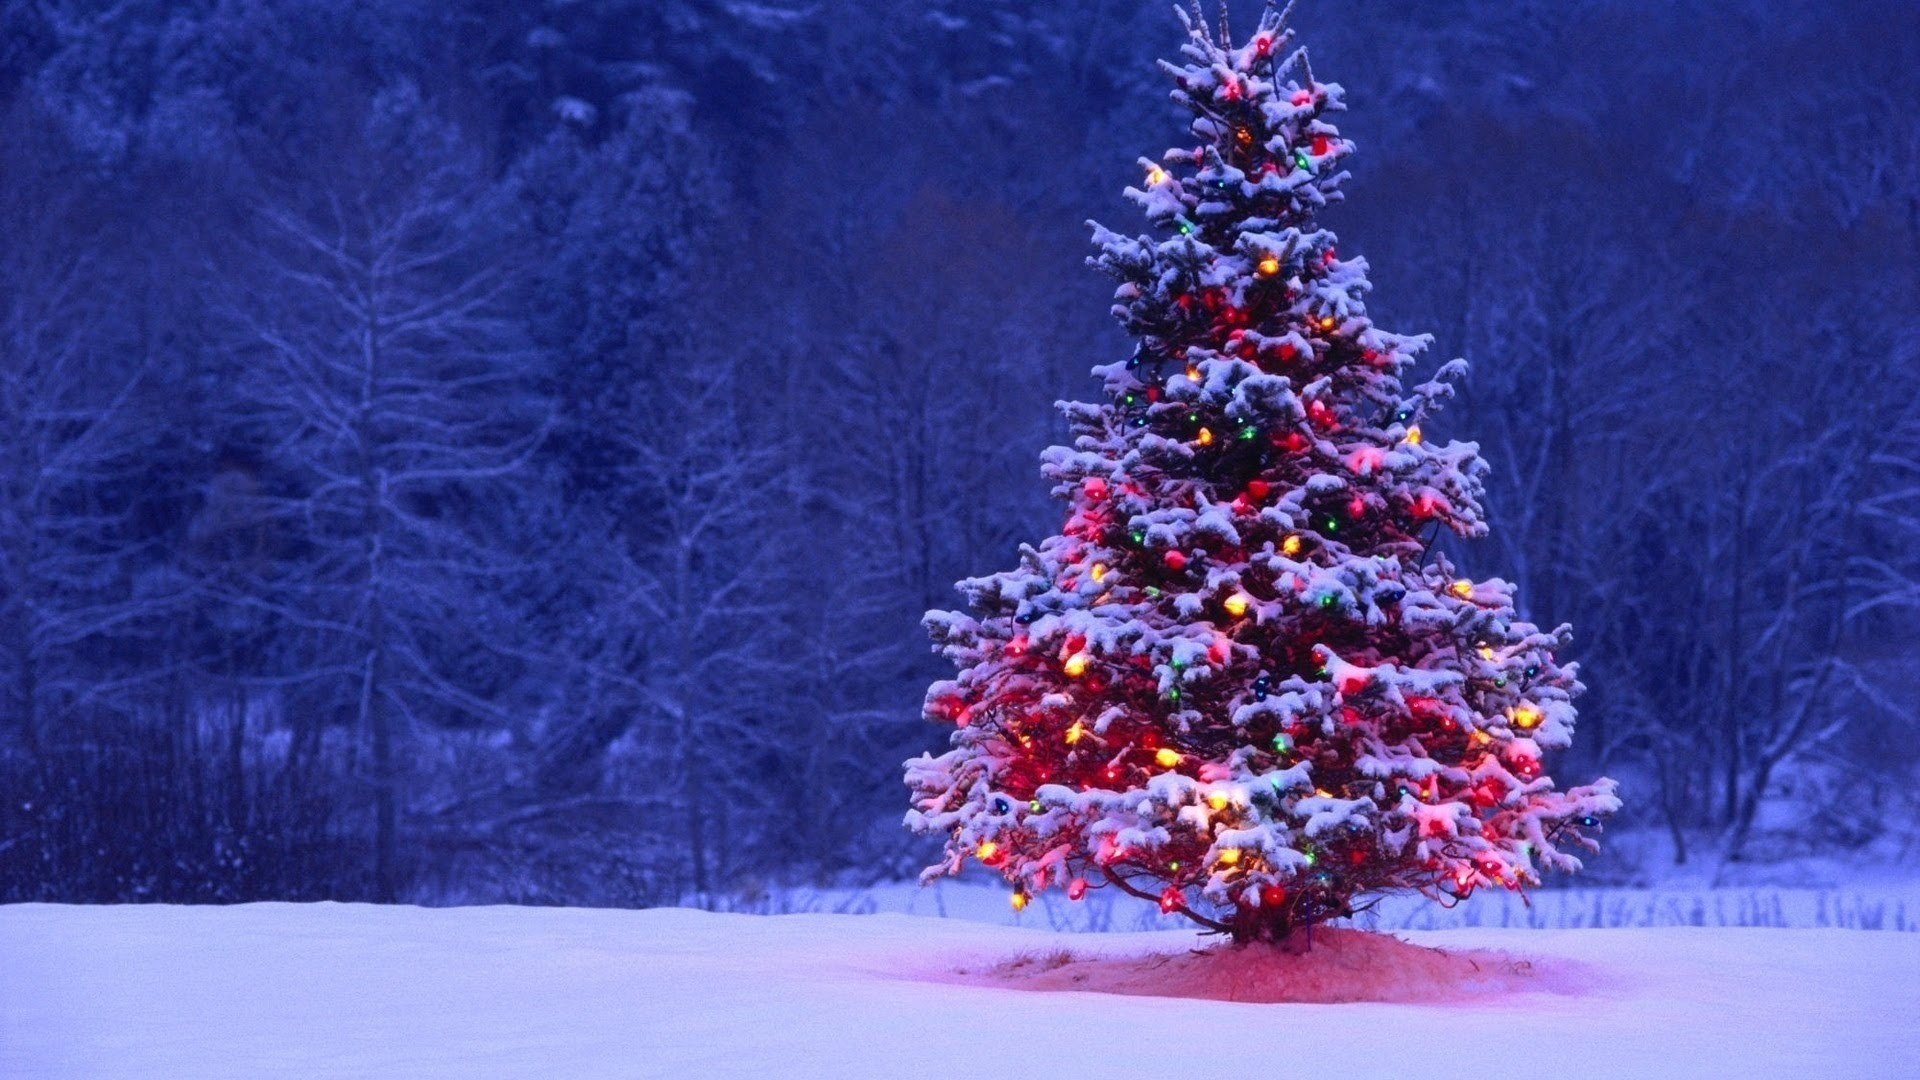 Res: 1920x1080, New Animated Christmas Wallpapers for iPhone Gallery - Christmas iPhone  Wallpaper